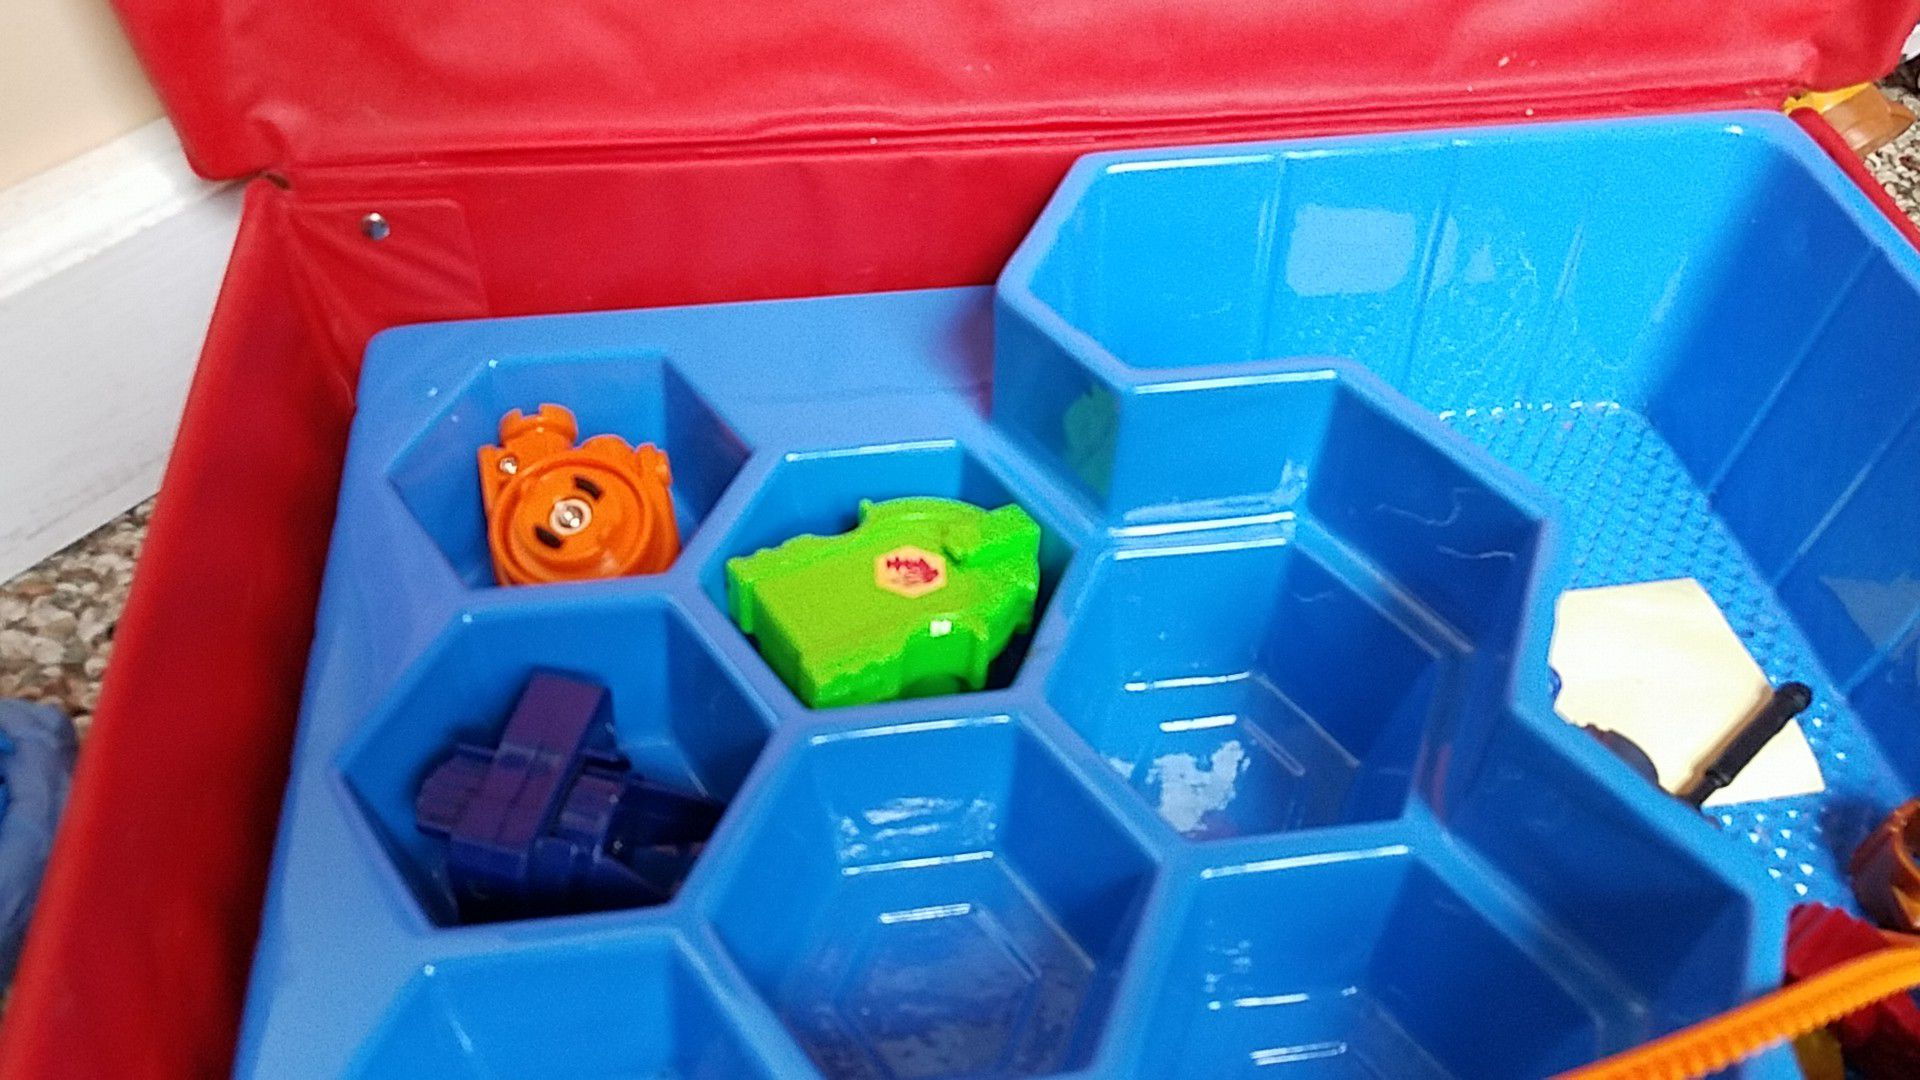 Beyblades and arena sets